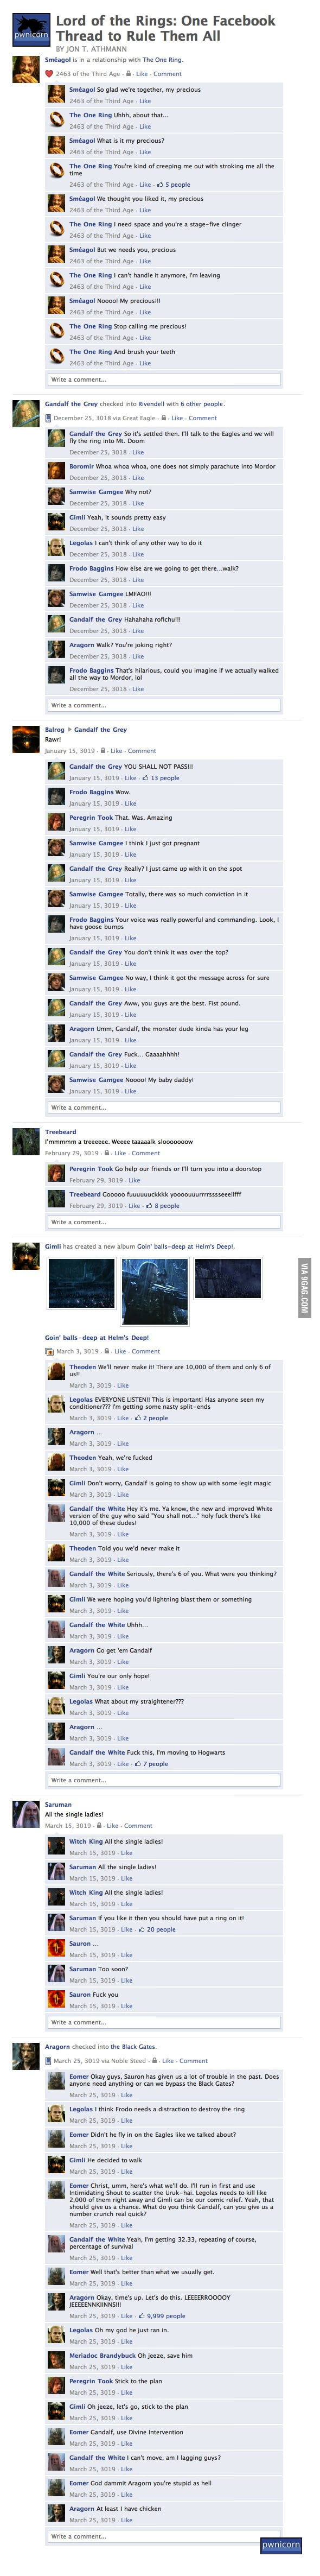 One facebook to rule them all...